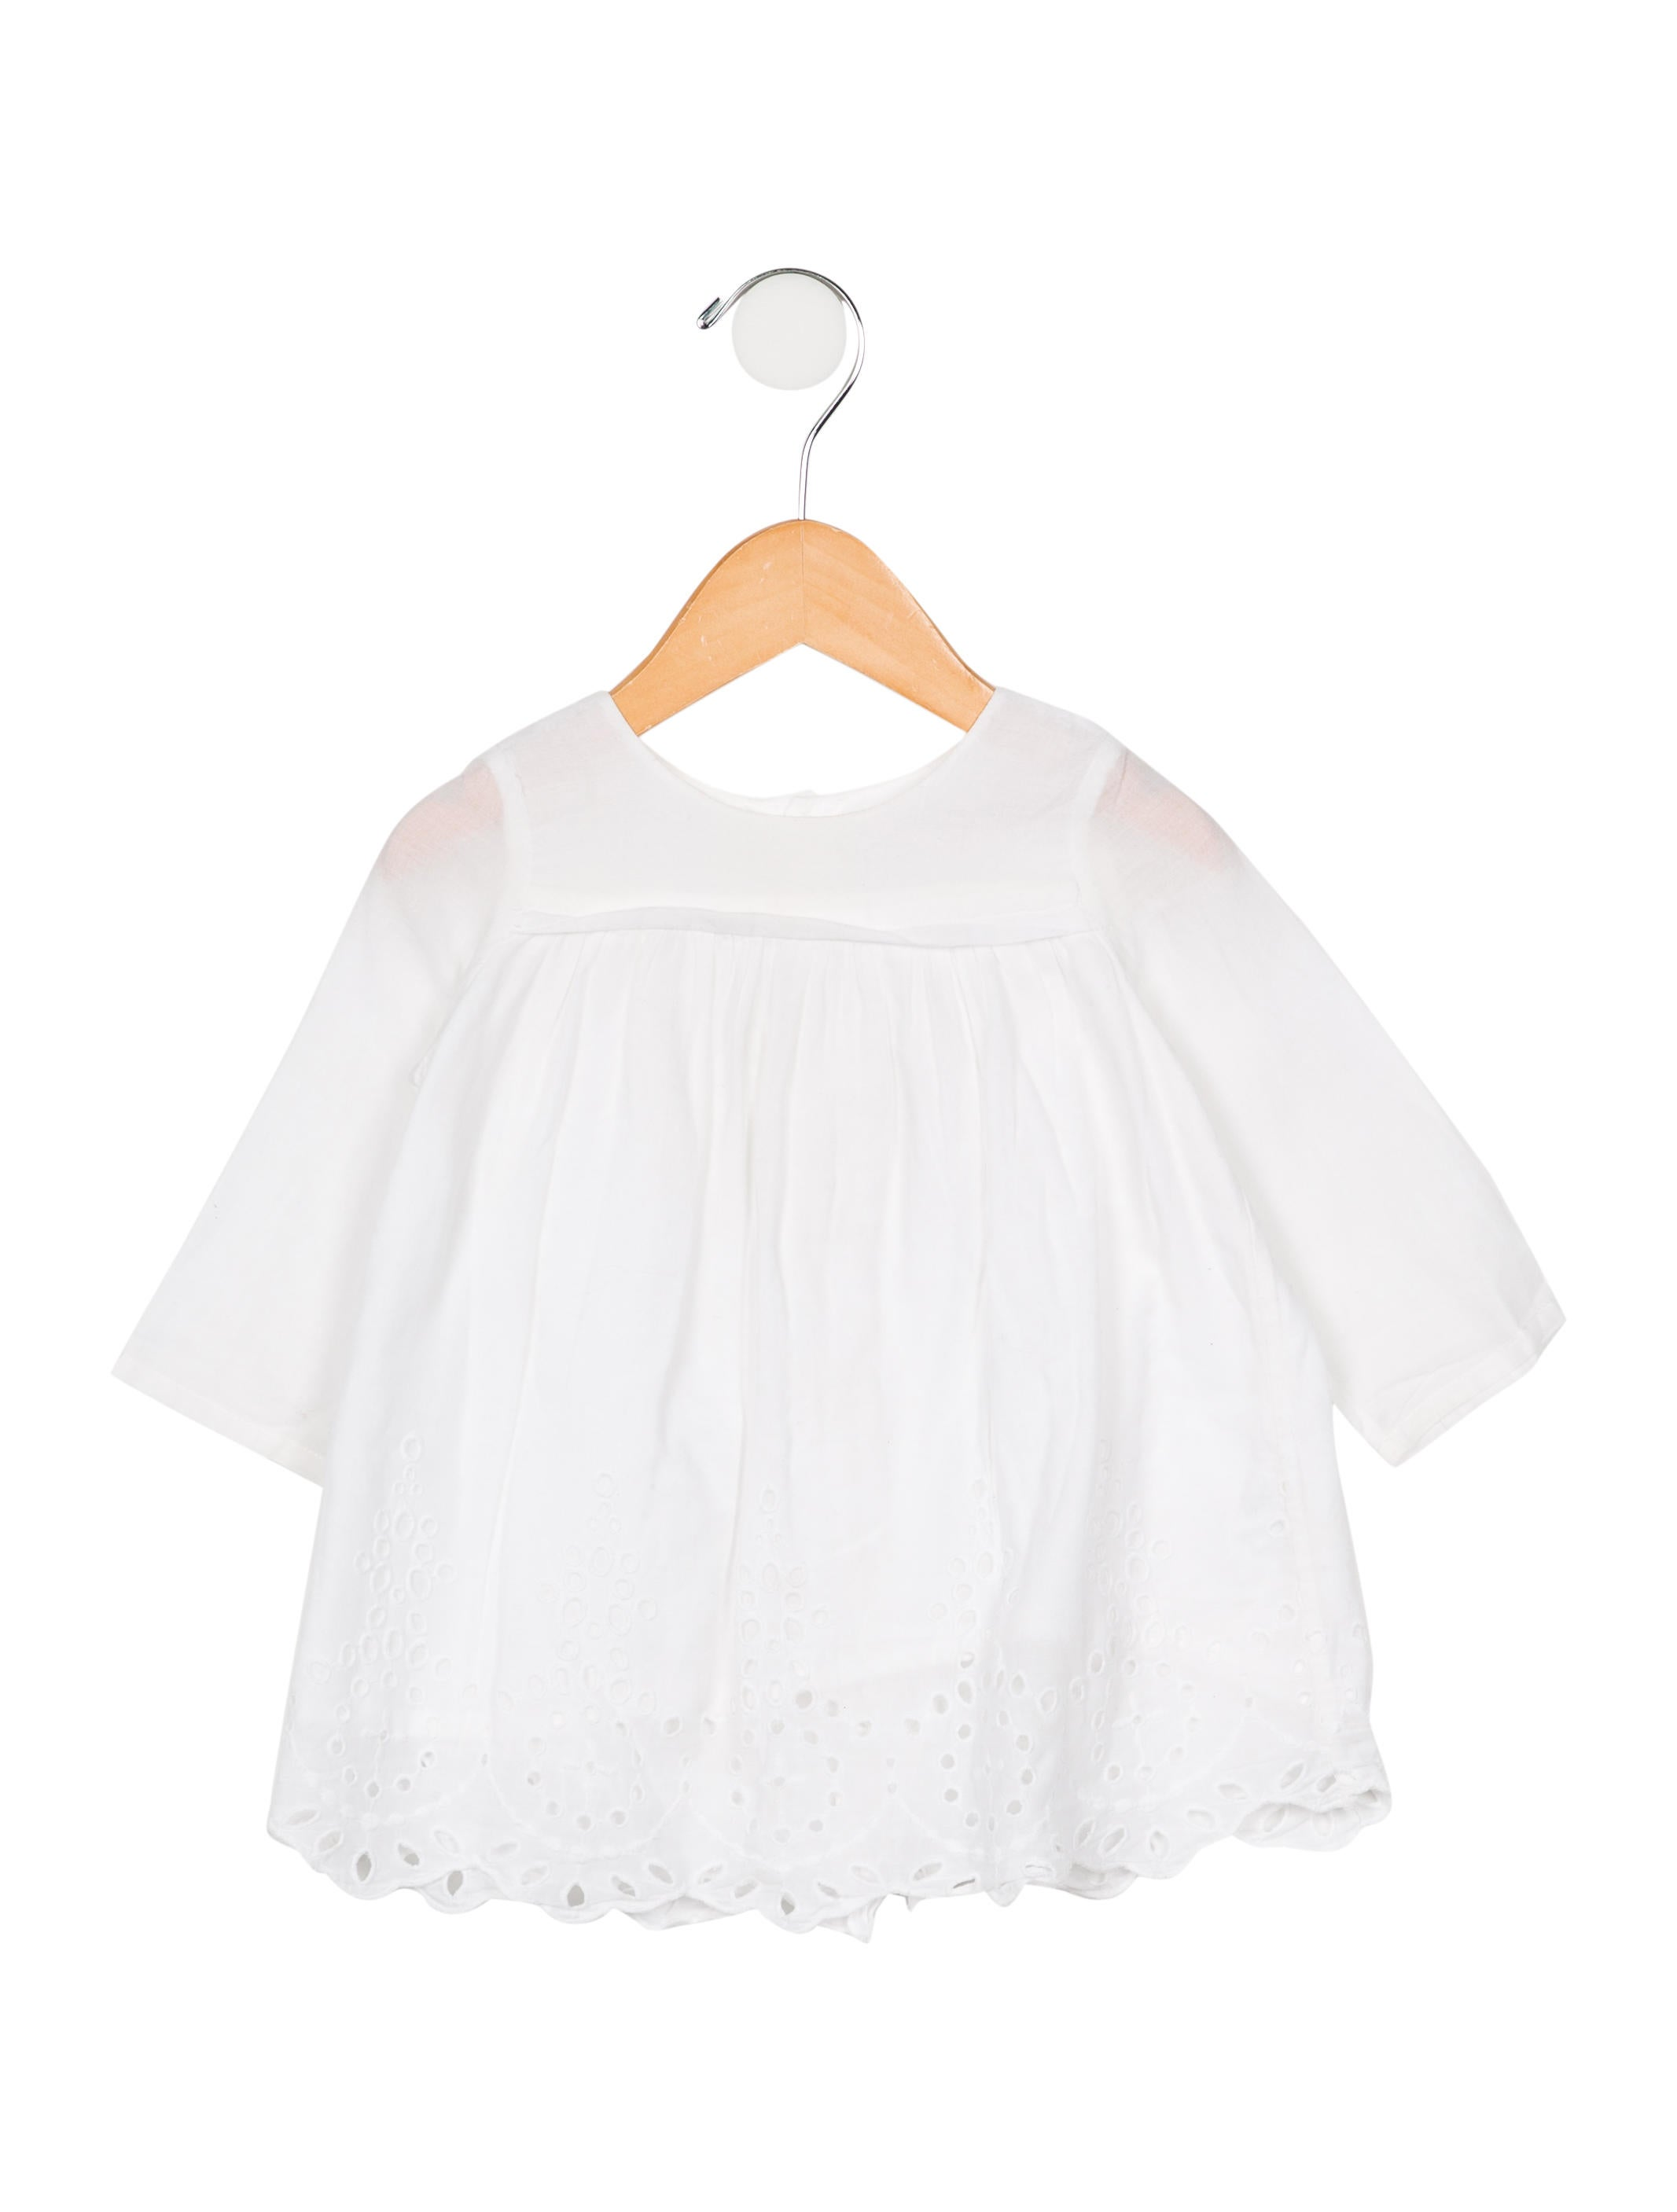 680b5a374a2c Bonpoint Girls  Broderie Anglaise Top - Girls - WBONP37638